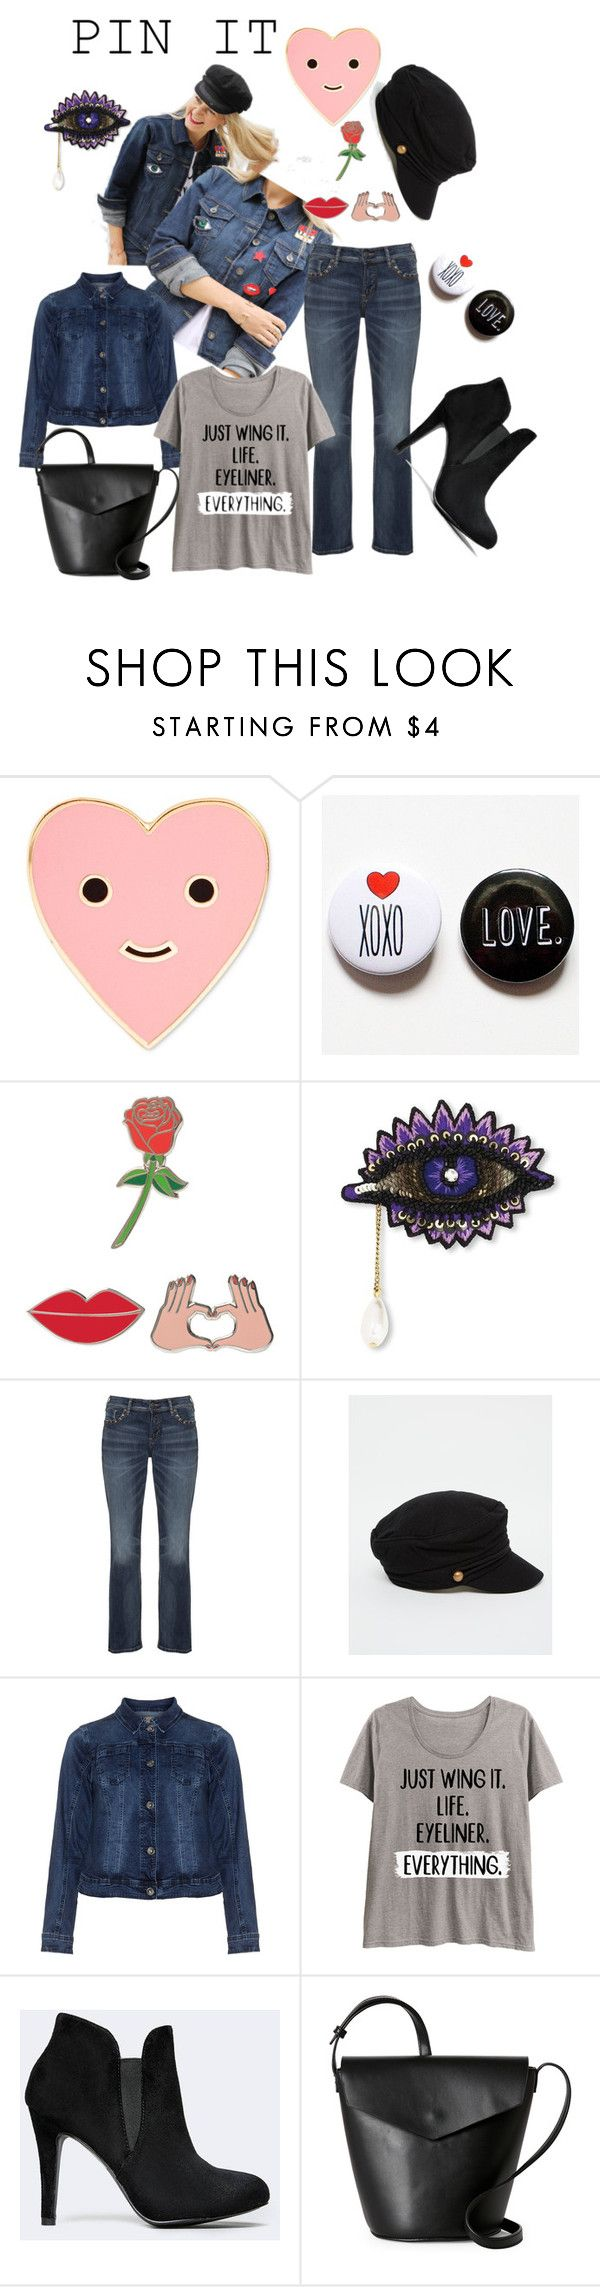 """""""Pin it"""" by shistyle on Polyvore featuring ban.do, iDecoz, Forest of Chintz, Silver Jeans Co., ASOS, Zizzi, LC Trendz, Street Level, pins and plussizefashion"""